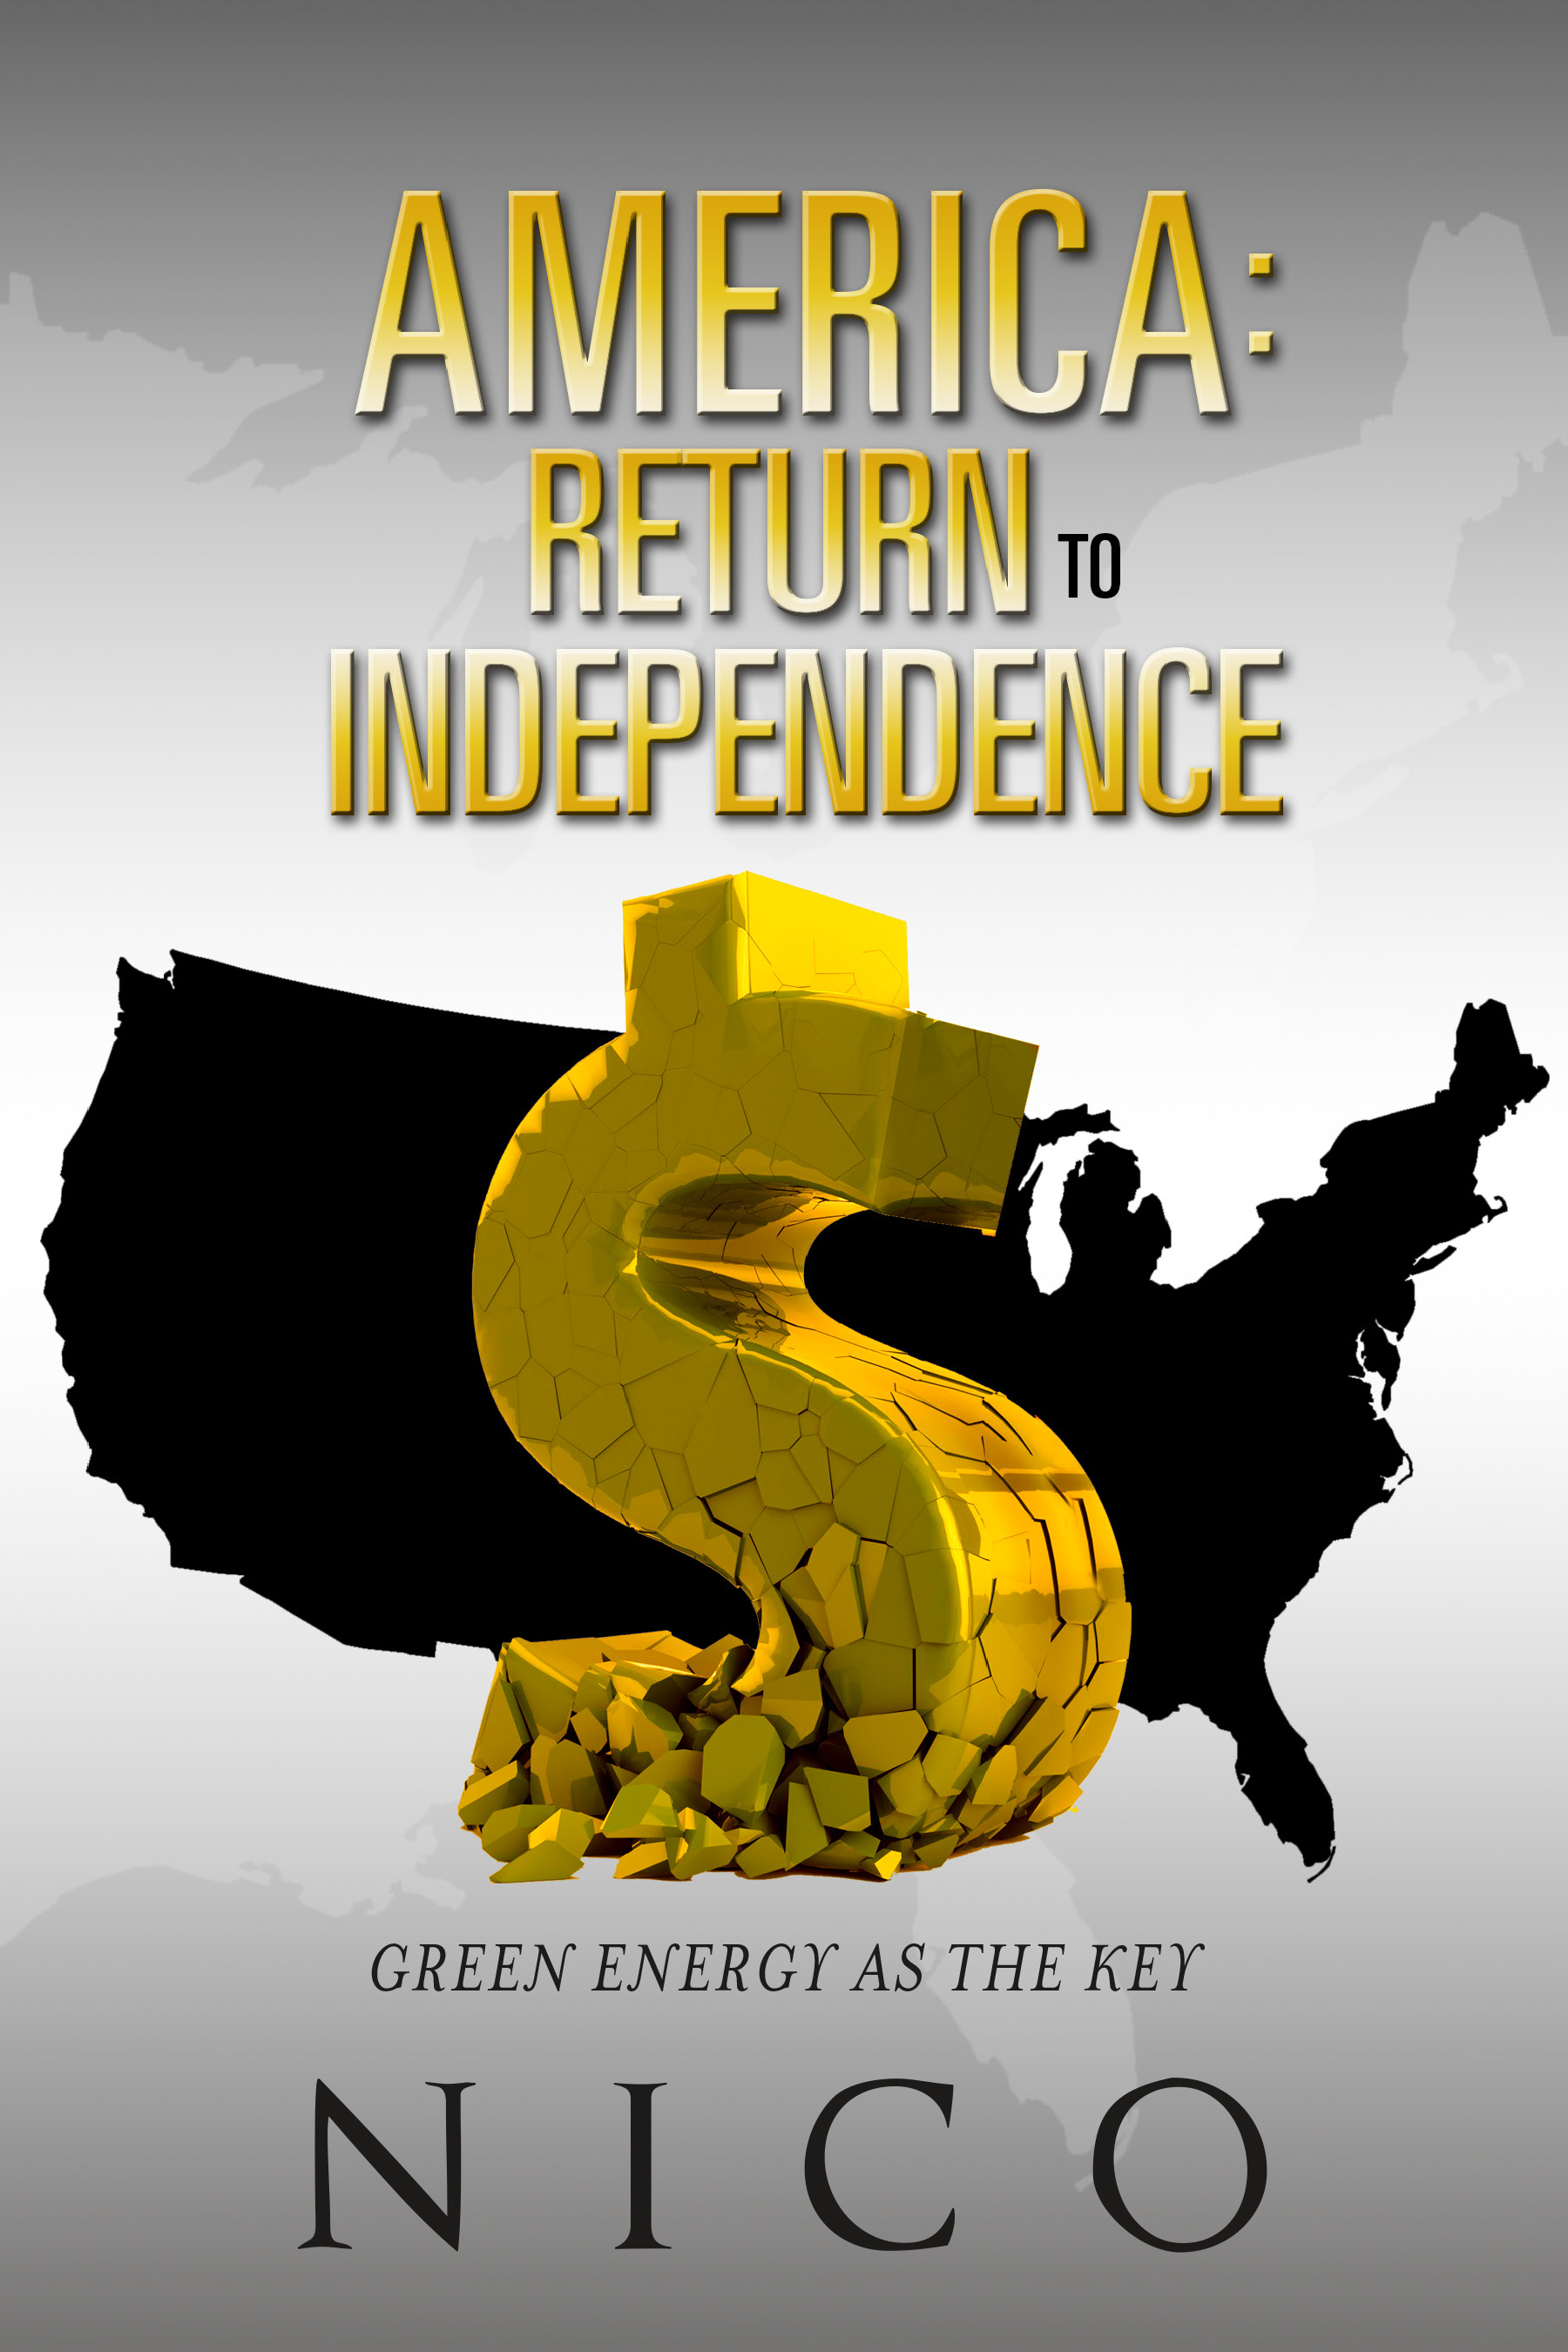 America: Return to Independence: Green Energy as the Key